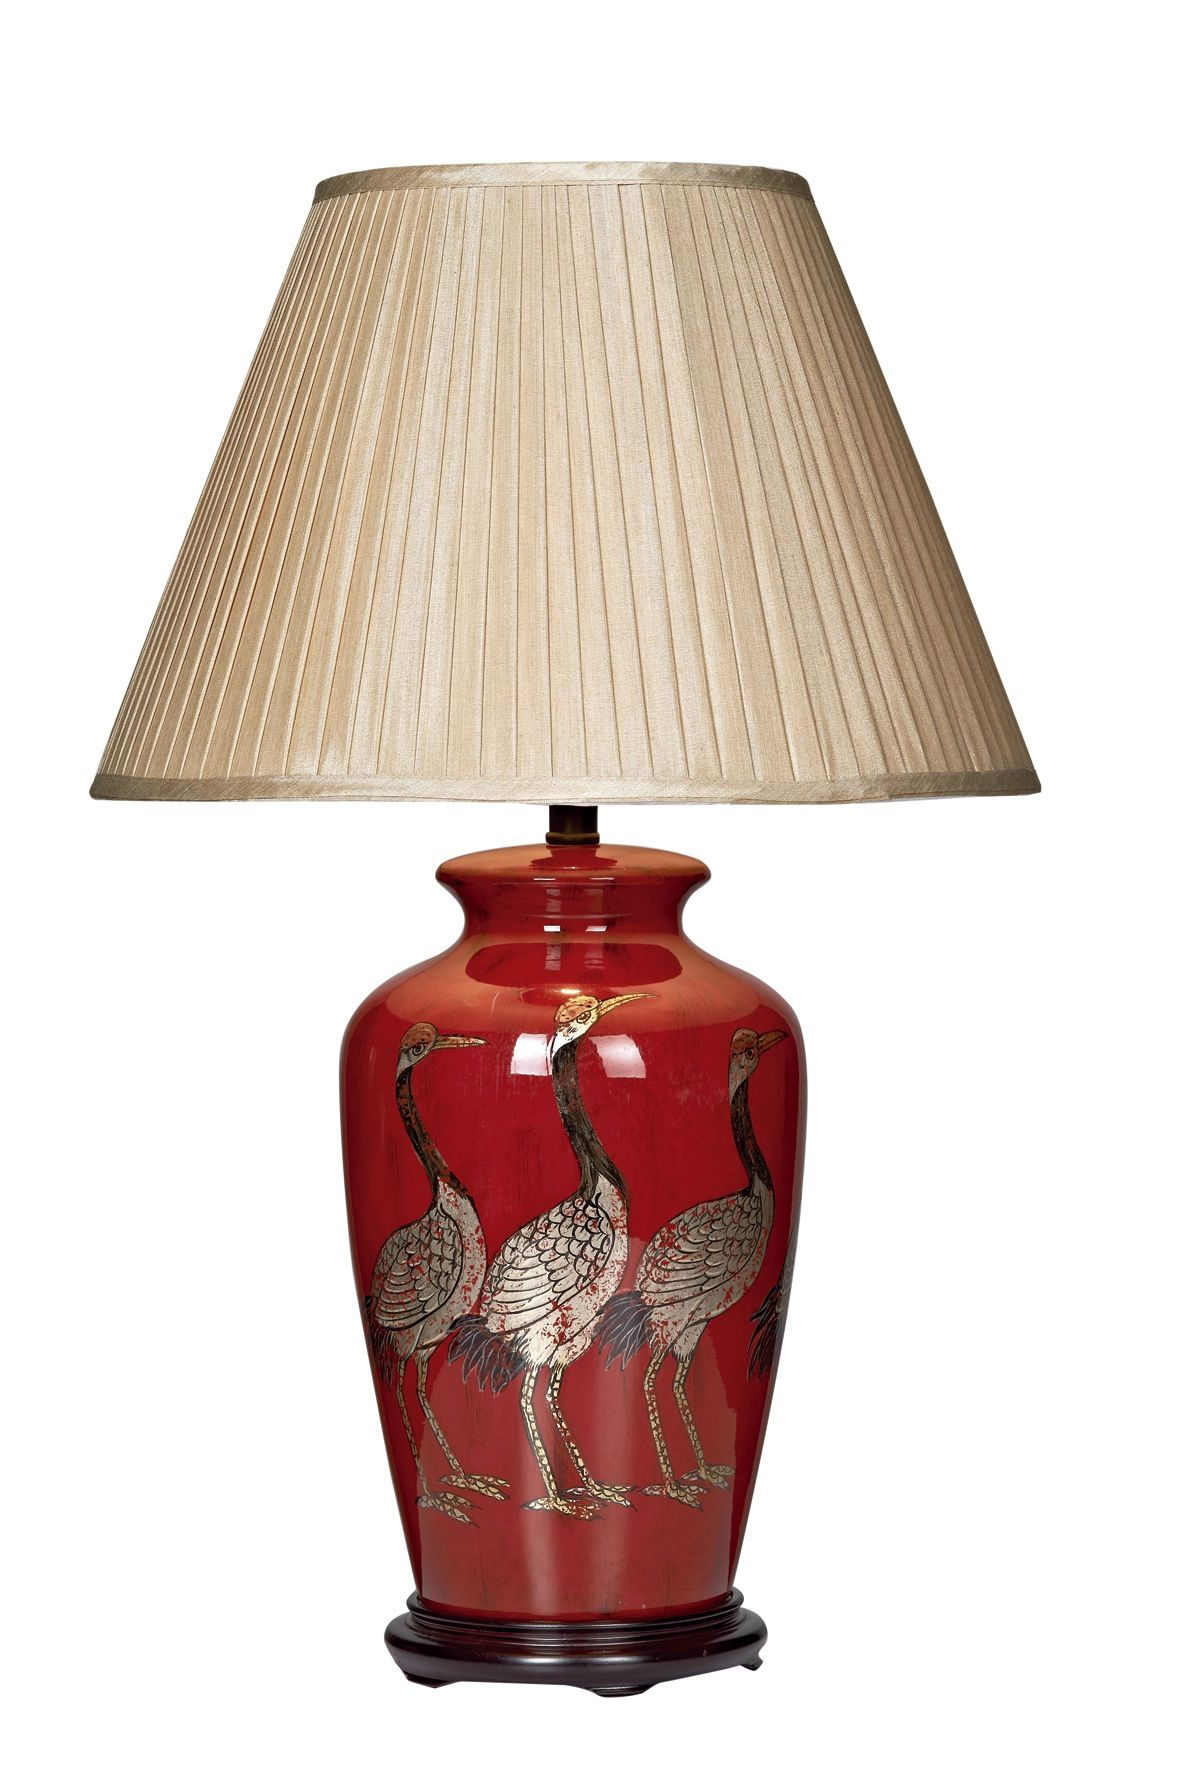 Deep Red Ceramic Glazed Base With Repeating Bird Pattern In